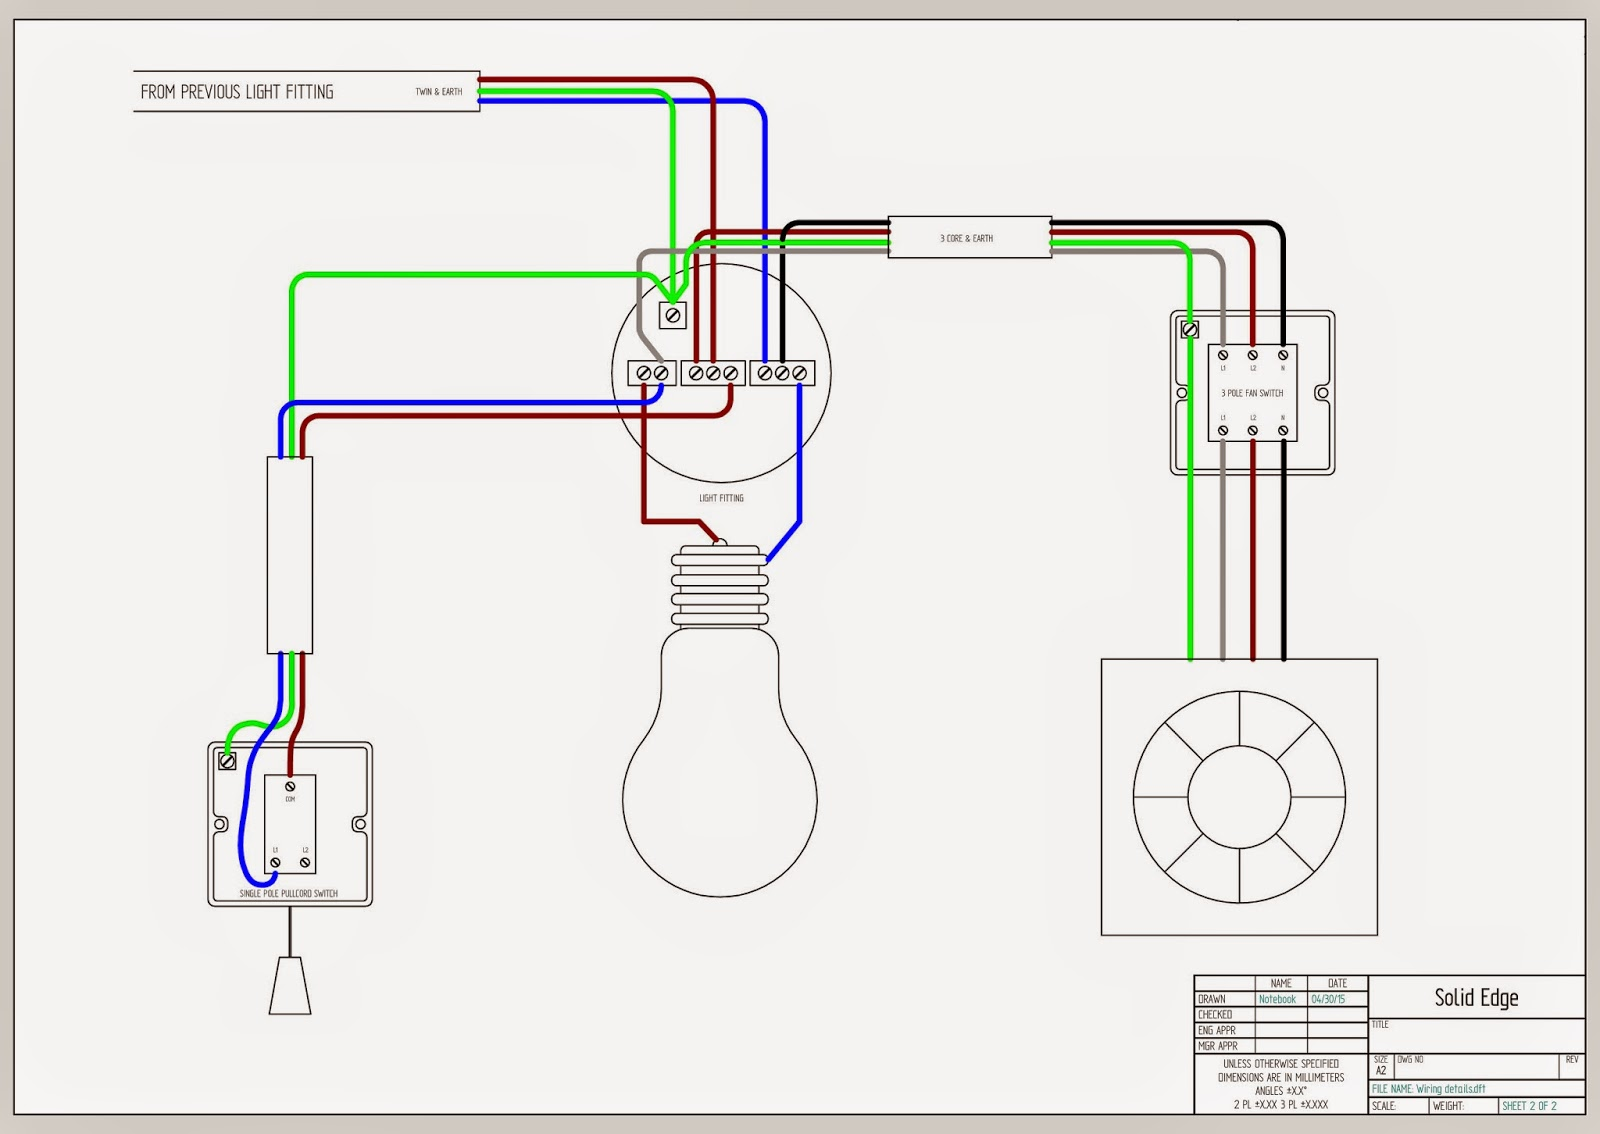 Nutone Bathroom Fan Light Wiring Diagram R33 Gtst Ecu Exhaust Fans With Free